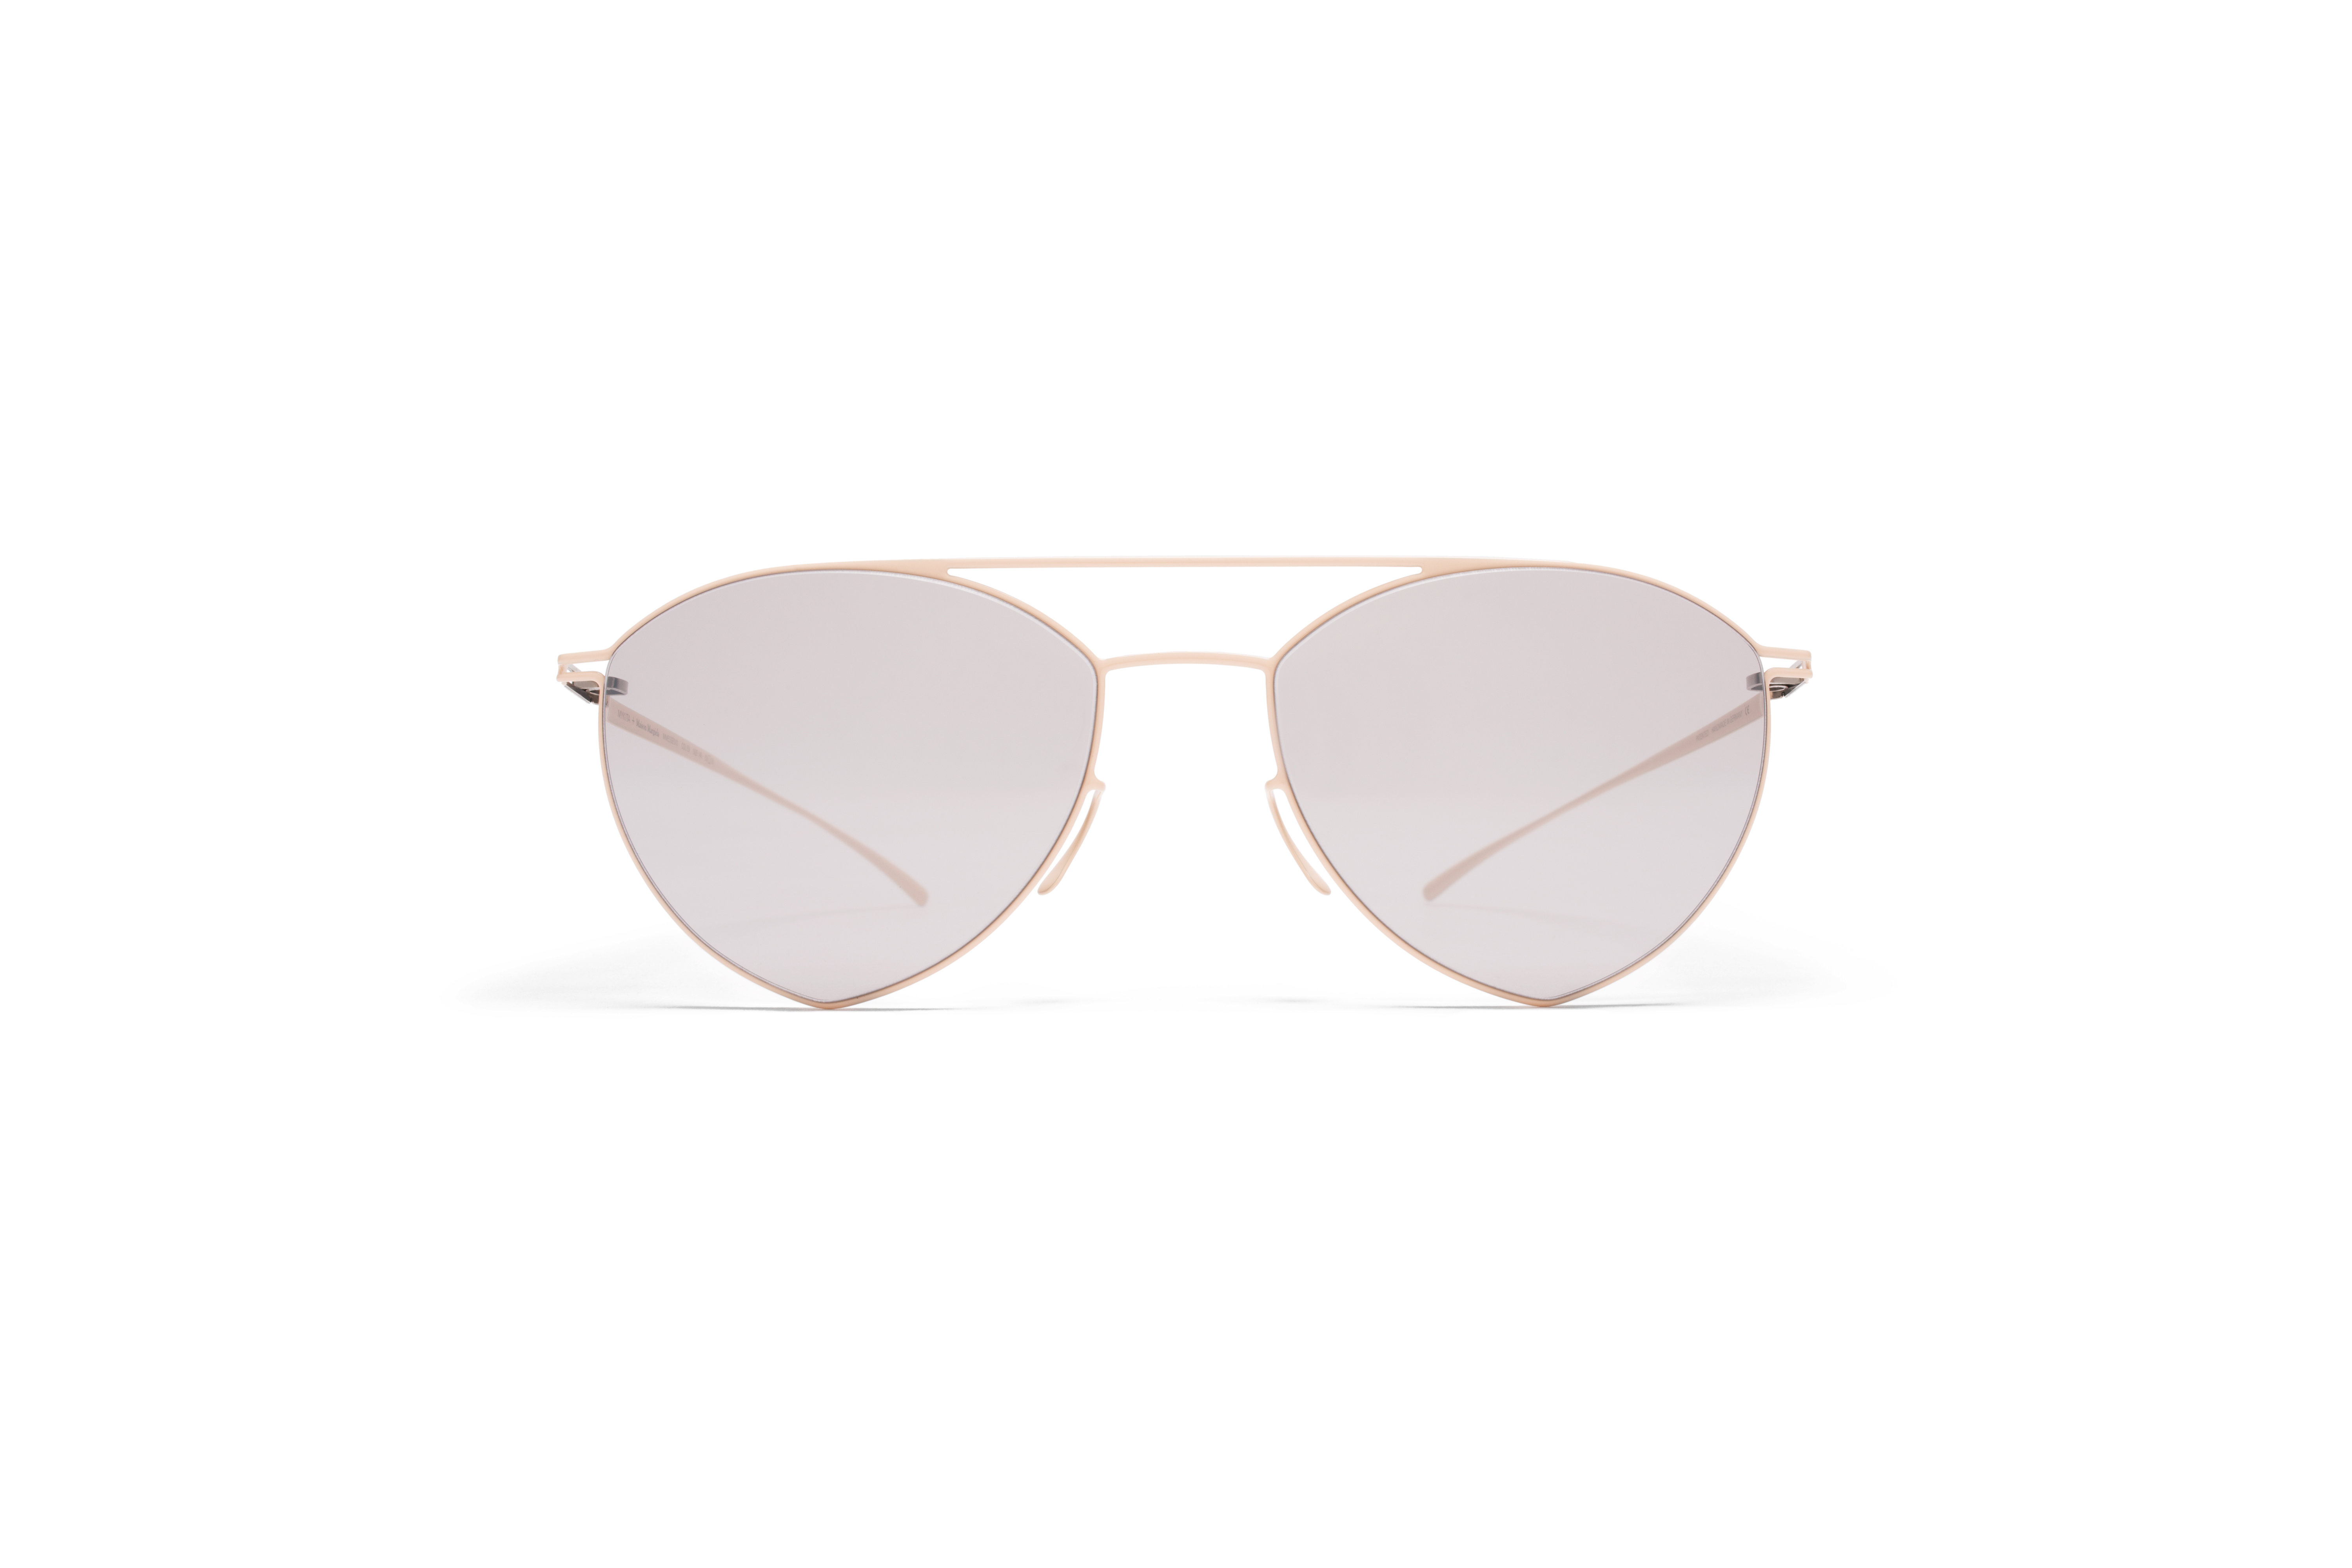 MYKITA Mm Sun Mmesse010 E9 Nude Warmgrey Flash